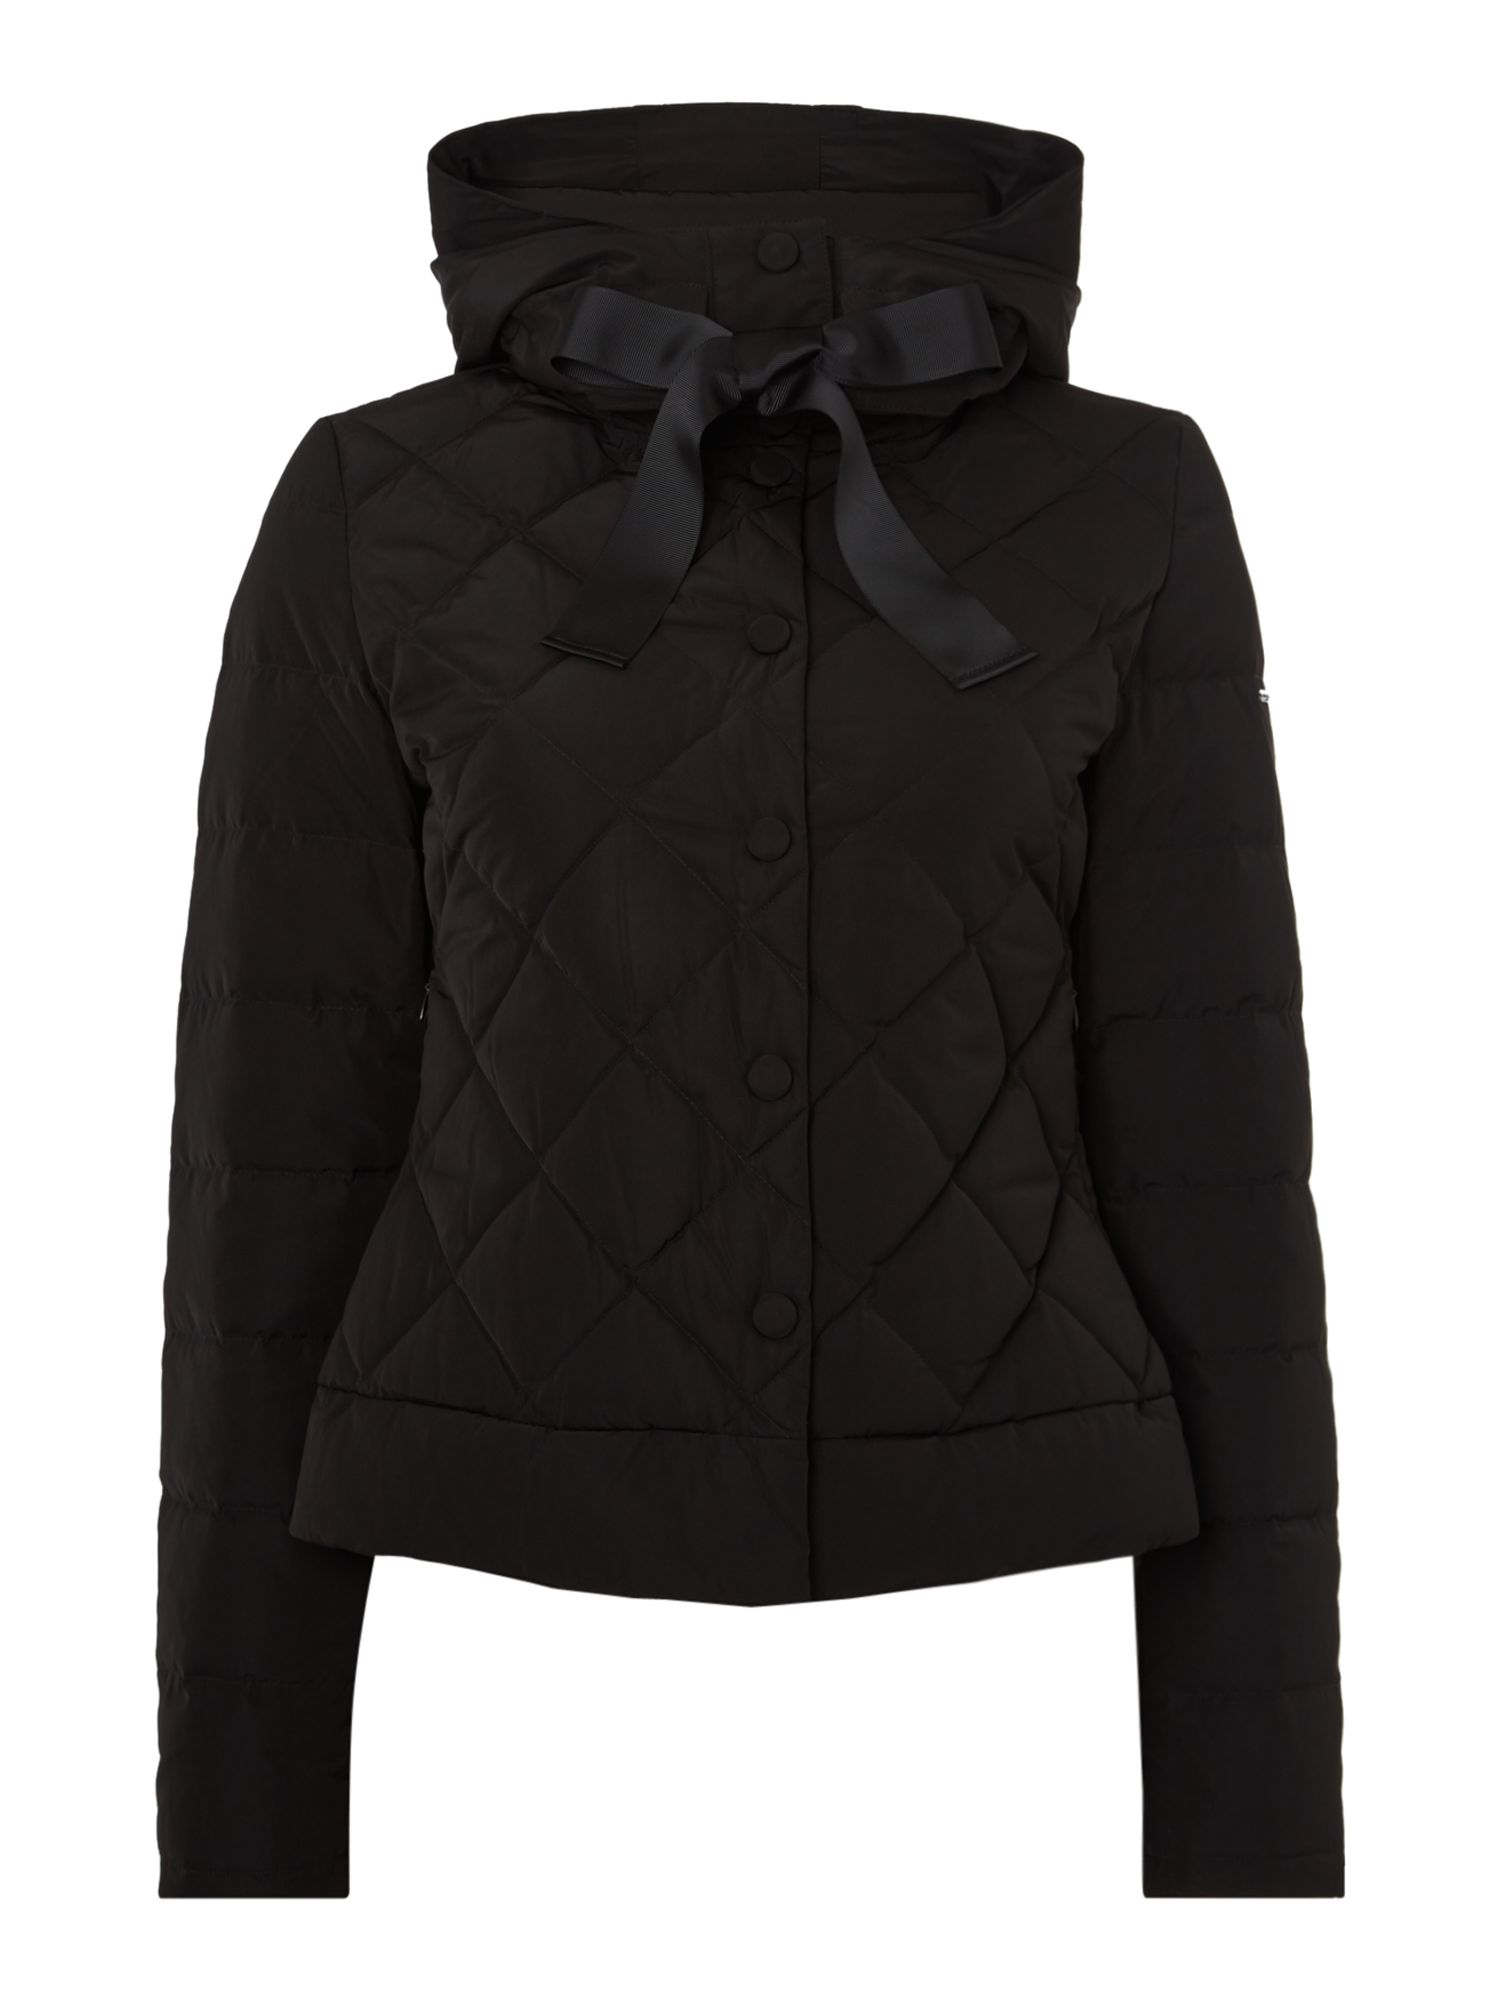 Armani Jeans Quilted Short Padded Jacket in Nero, Black